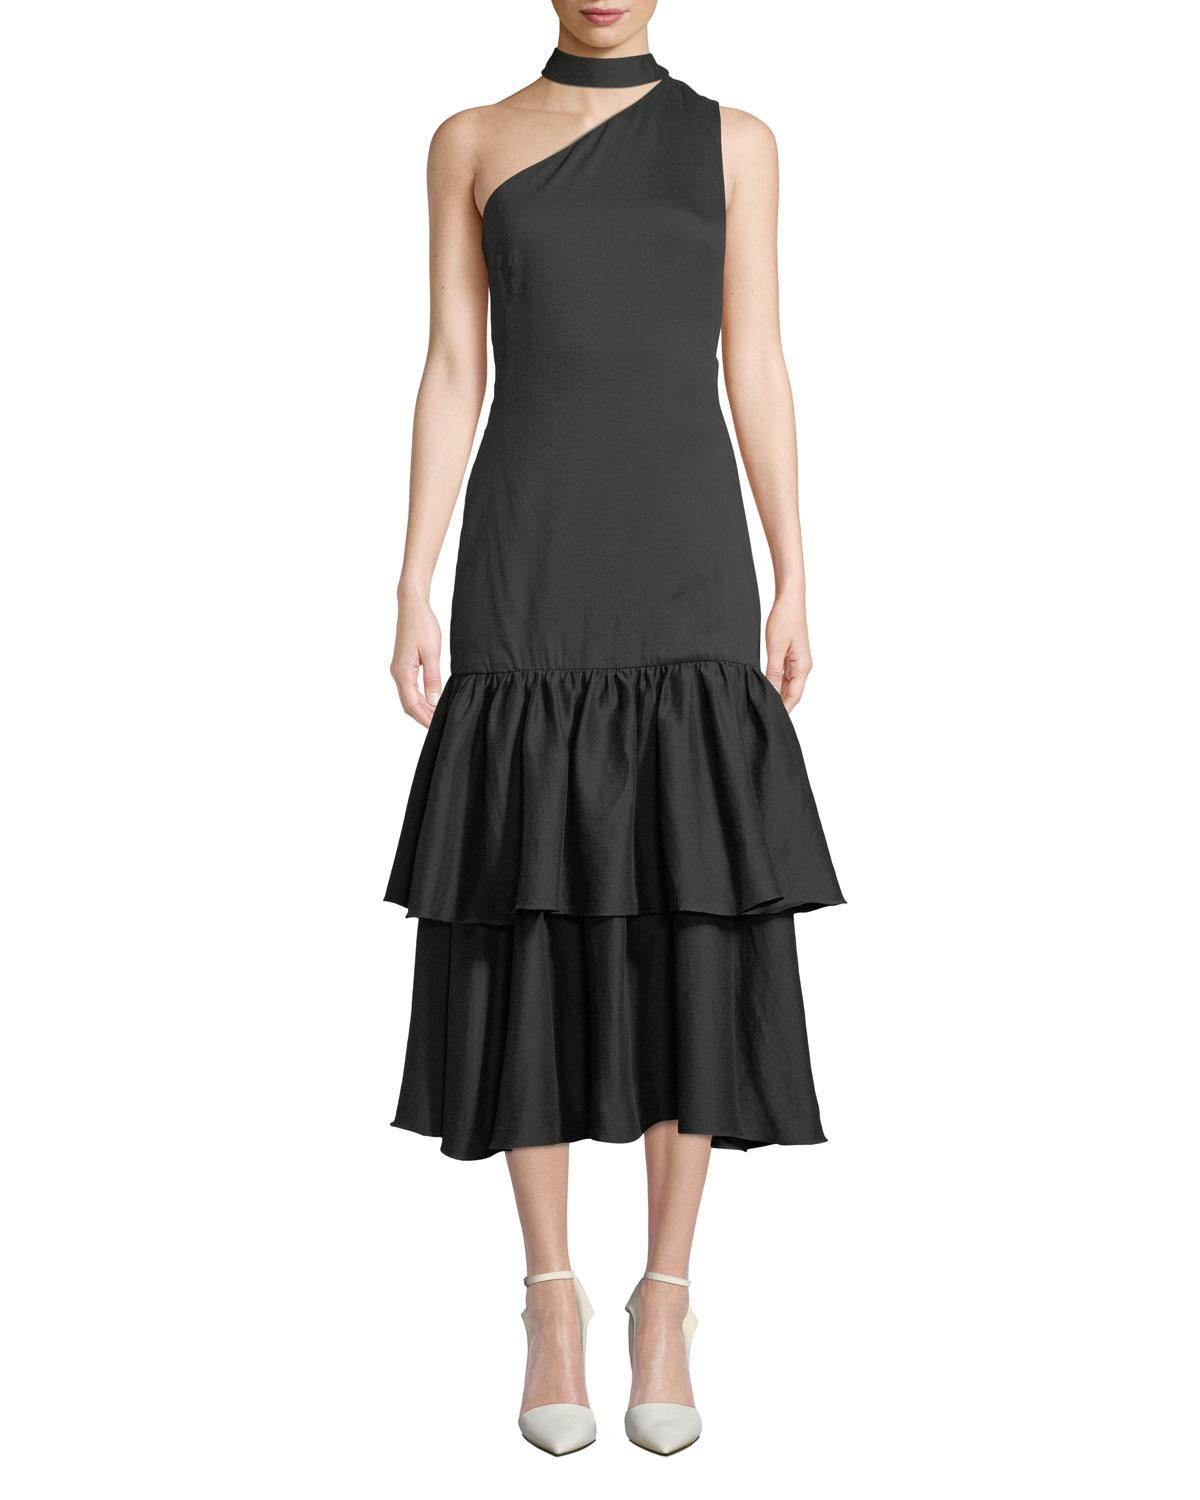 18a1f824e3d Lyst - Rejina Pyo Lizzie Asymmetric Tiered Woven Midi Dress in Black ...